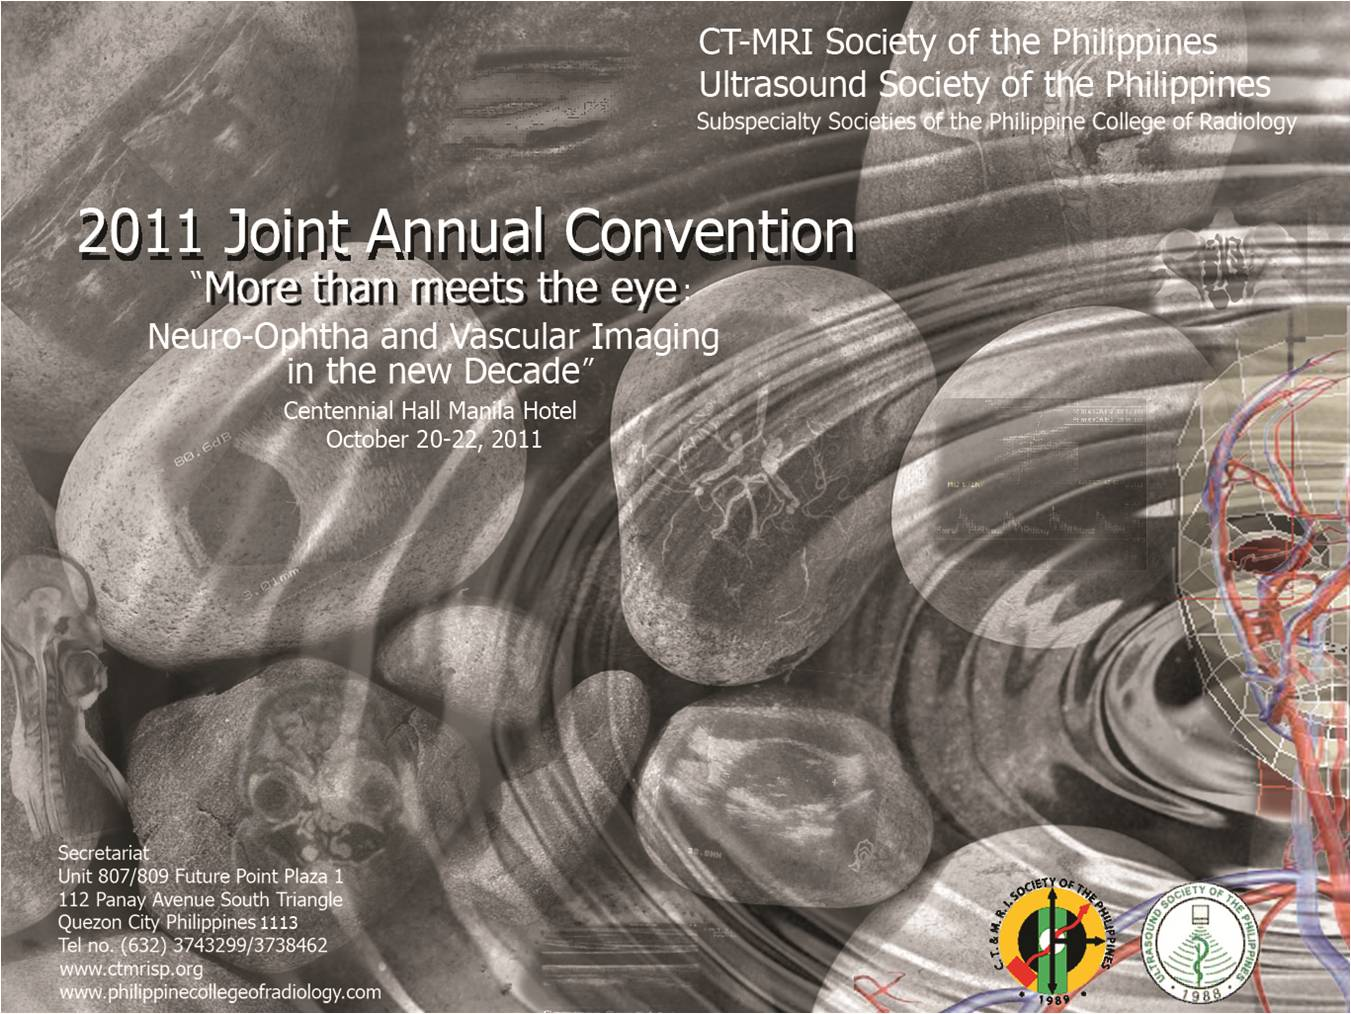 2011 JOINT ANNUAL CONVENTION